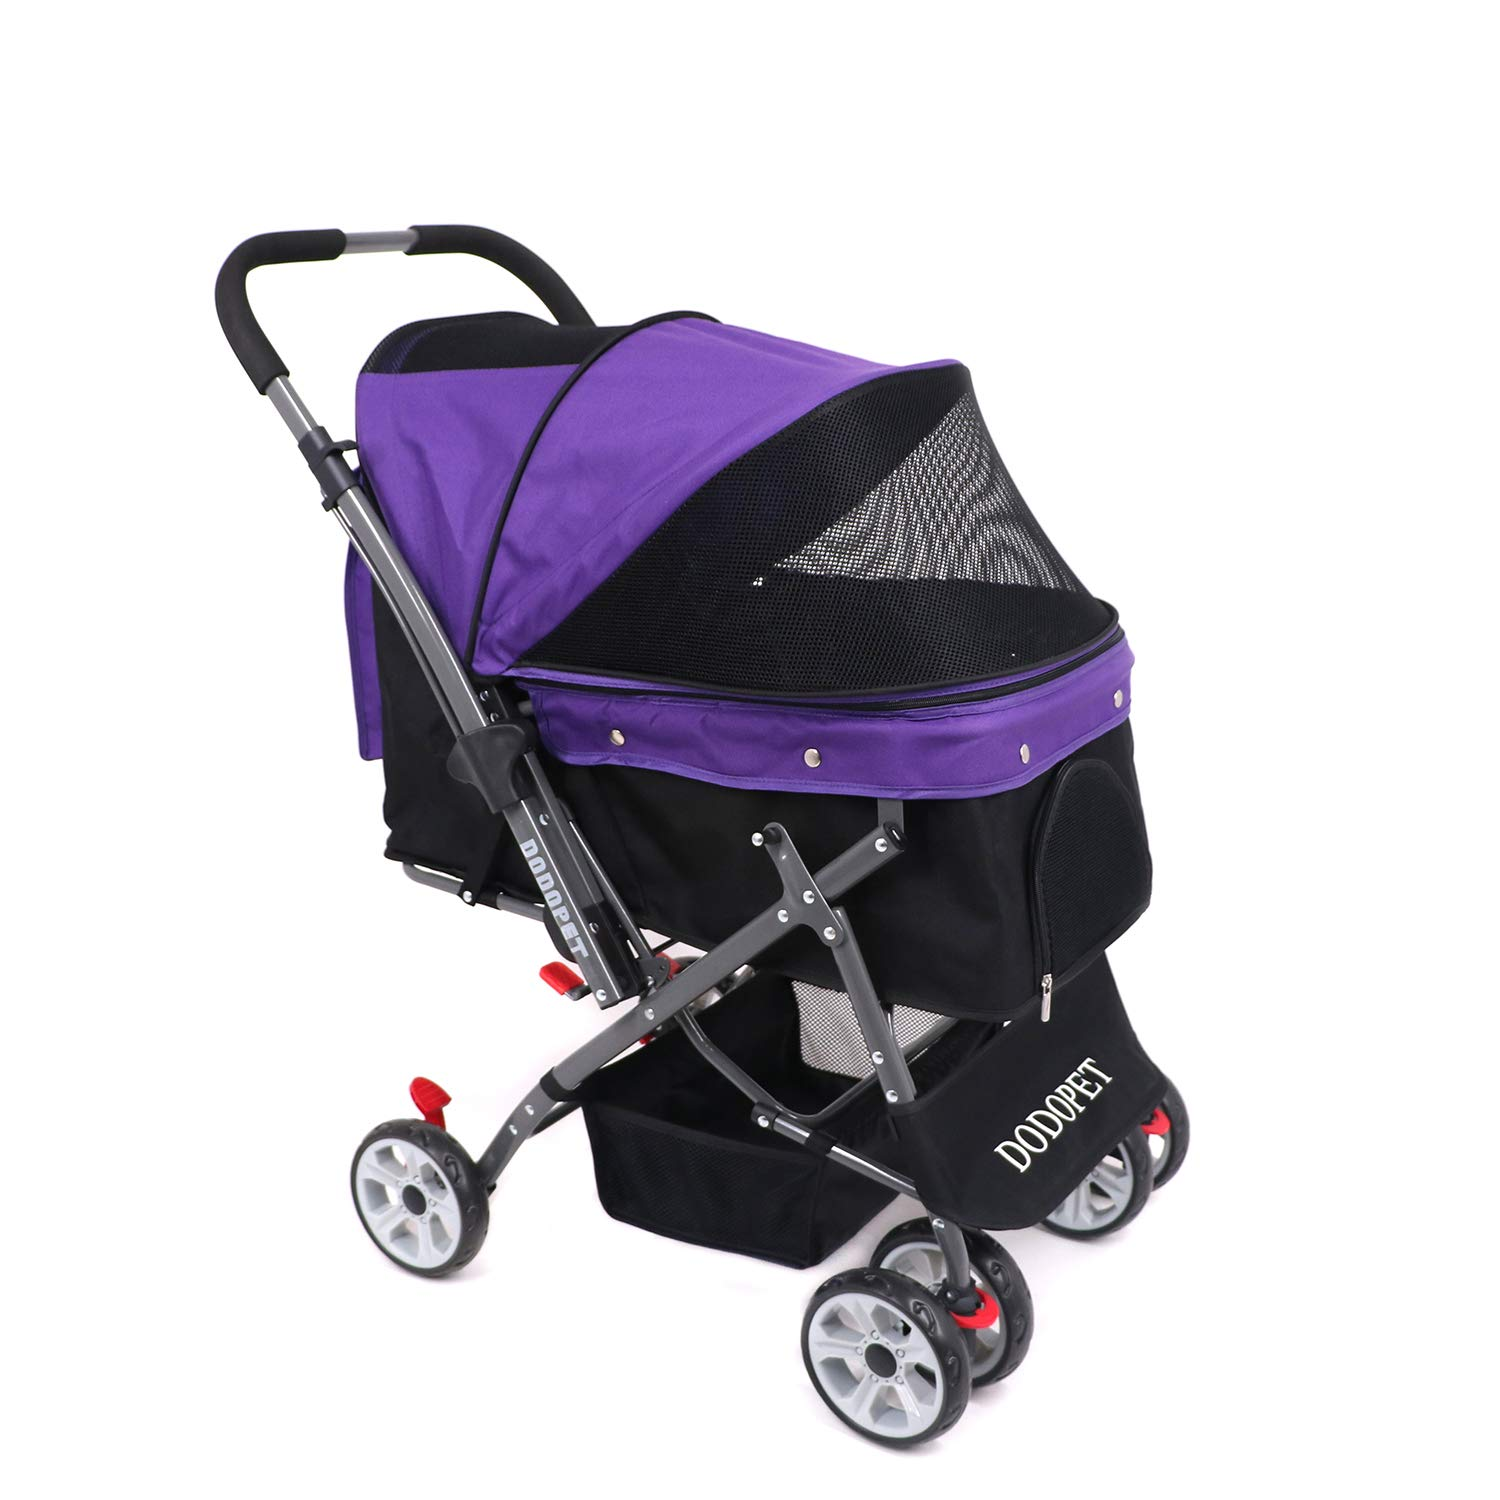 DODOPET - Dog/Cat/Pet Stroller, 4 Wheel Dog Cage Stroller, Reversible Handle Bar, Pet Travel Folding Carrier, Strolling Cart, Strong and Stable, for Medium Pets Up to 50 lbs, Two Color(Purple) by DODO PET